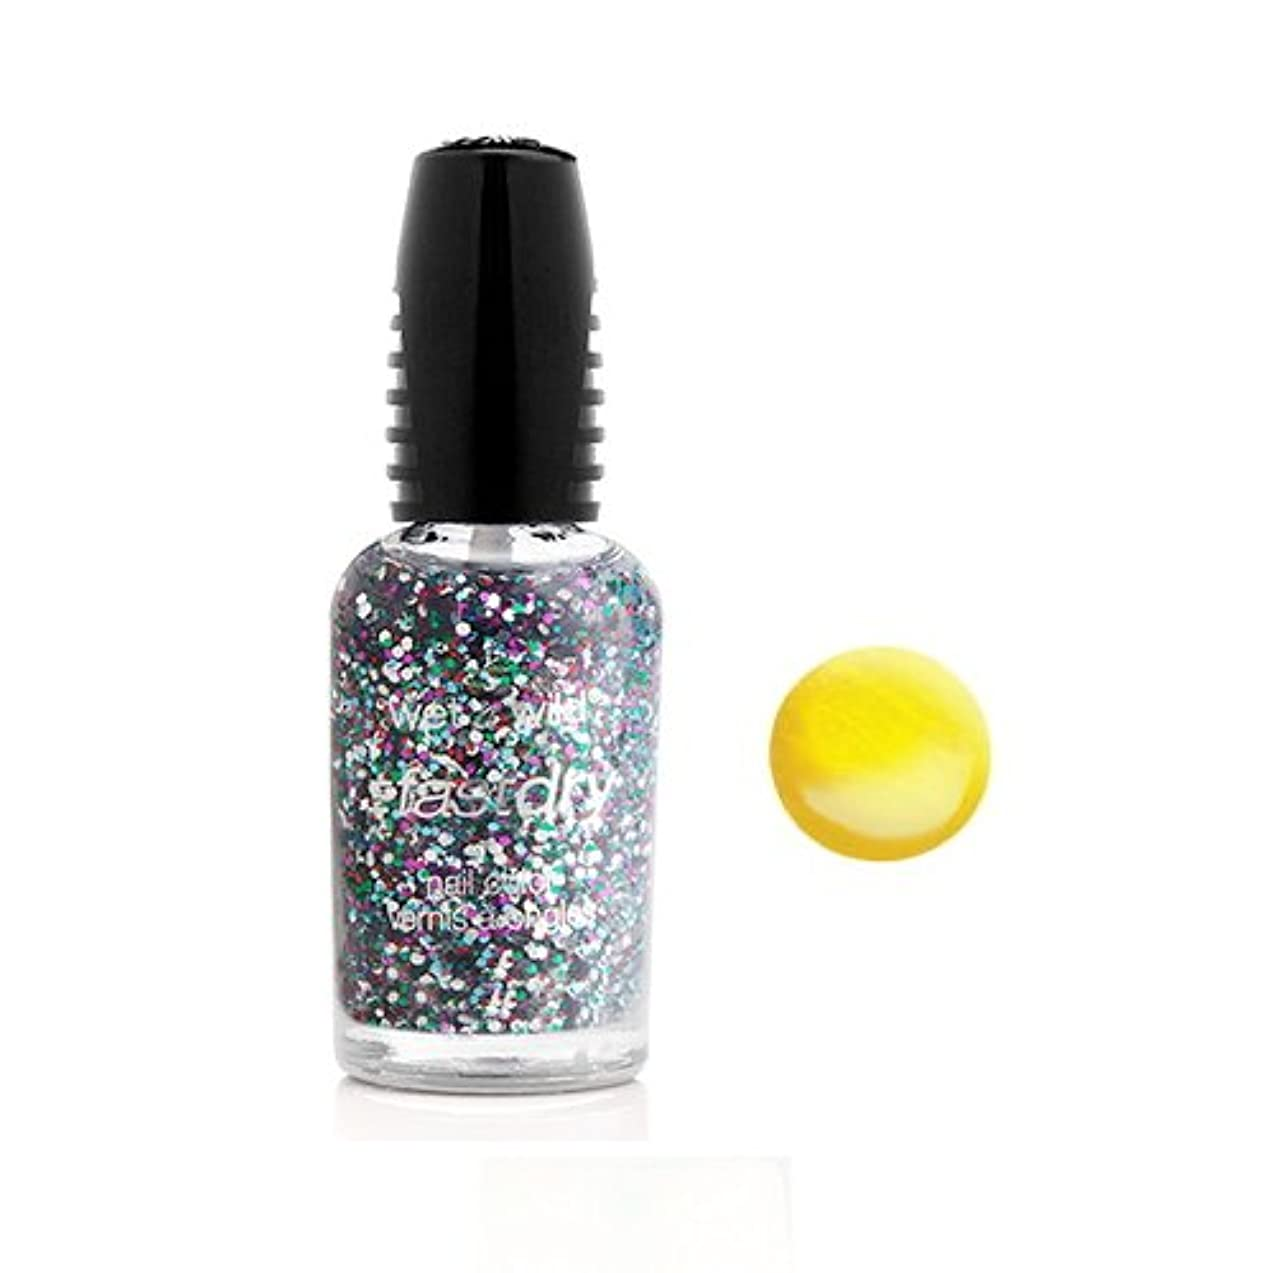 WET N WILD Fastdry Nail Color - The Wonder Yellow (並行輸入品)